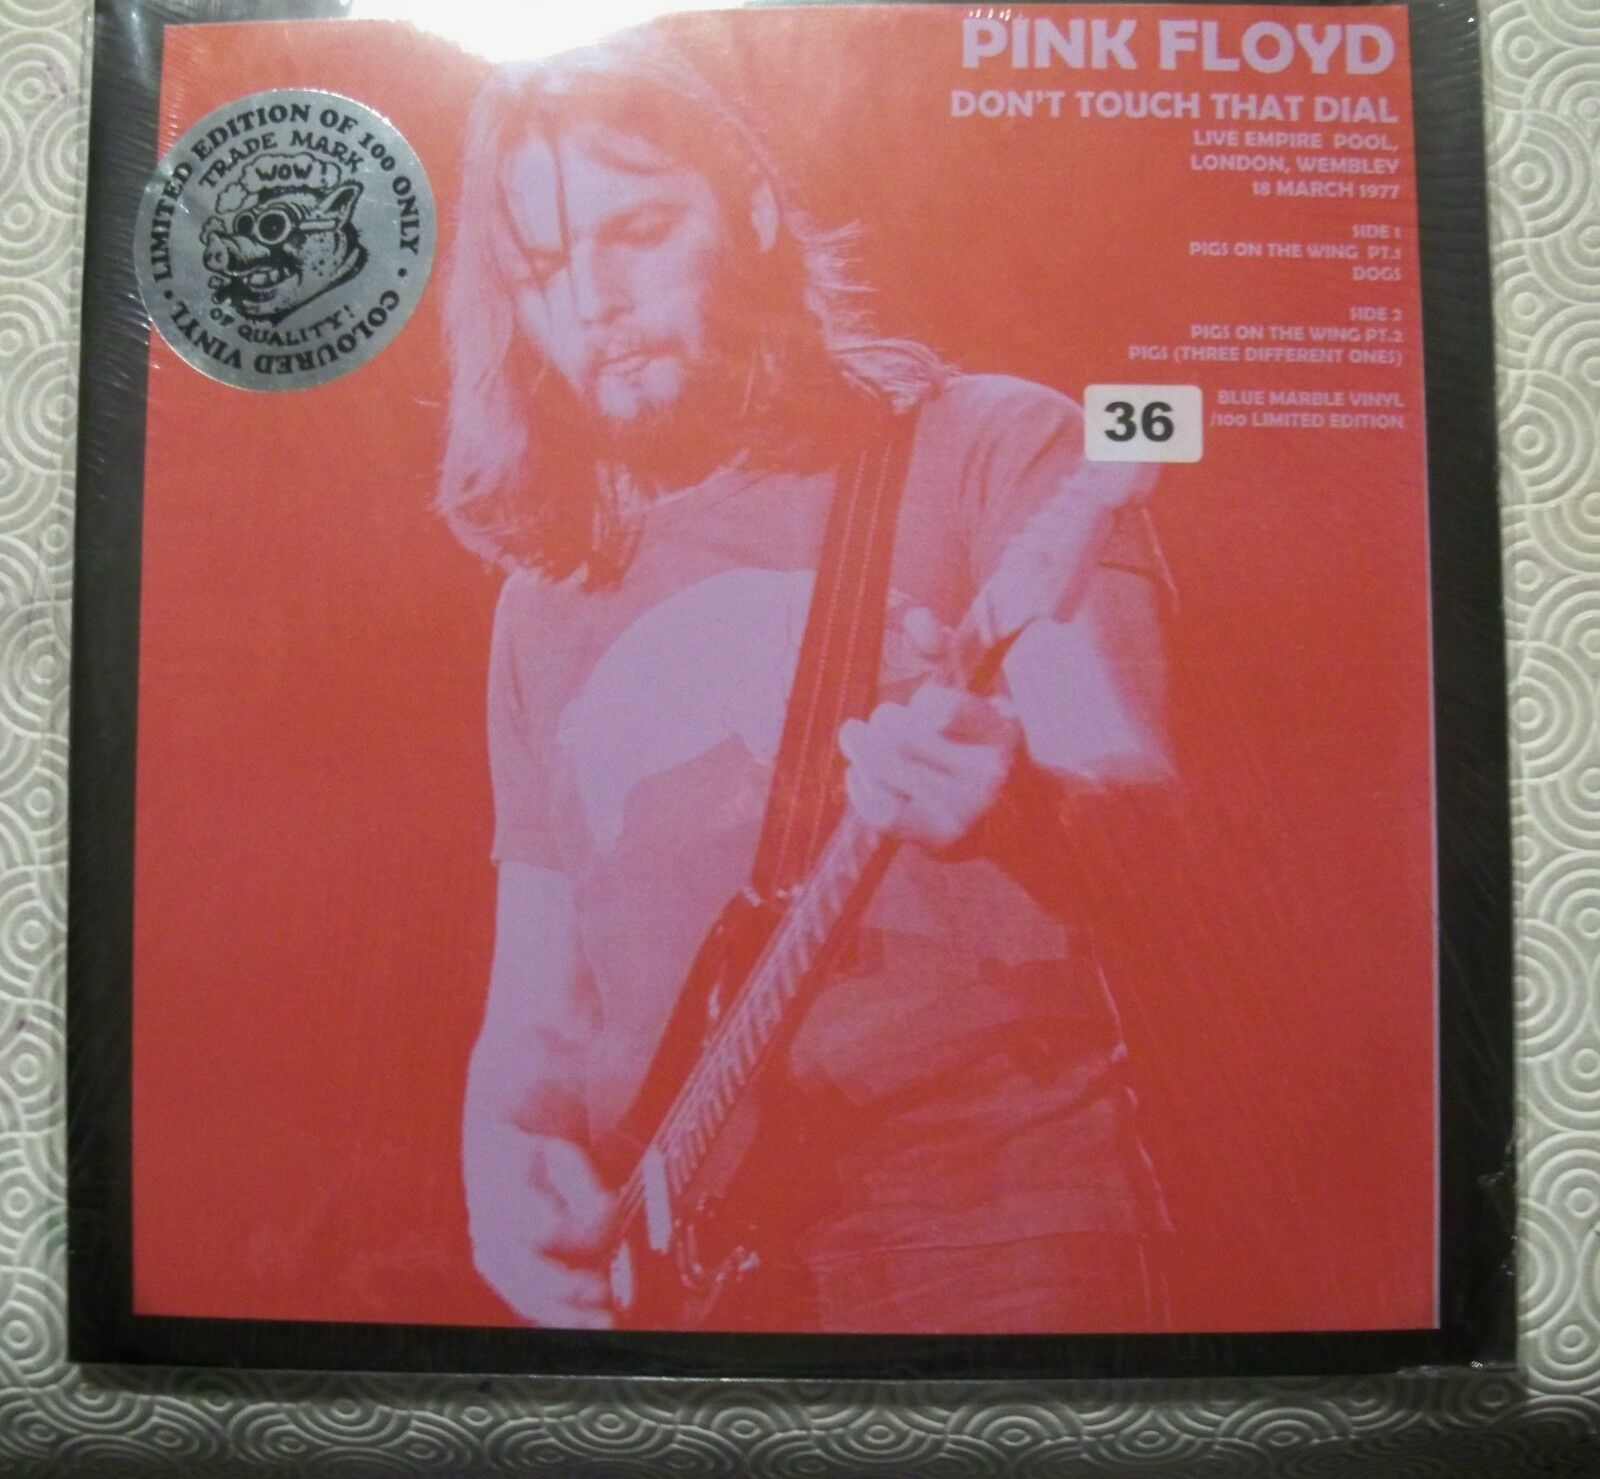 rose FLOYD  DON'T TOUCH THAT DIAL   TMOQ COLOUrouge LP EMPIRE POOL WEMBLEY 1977